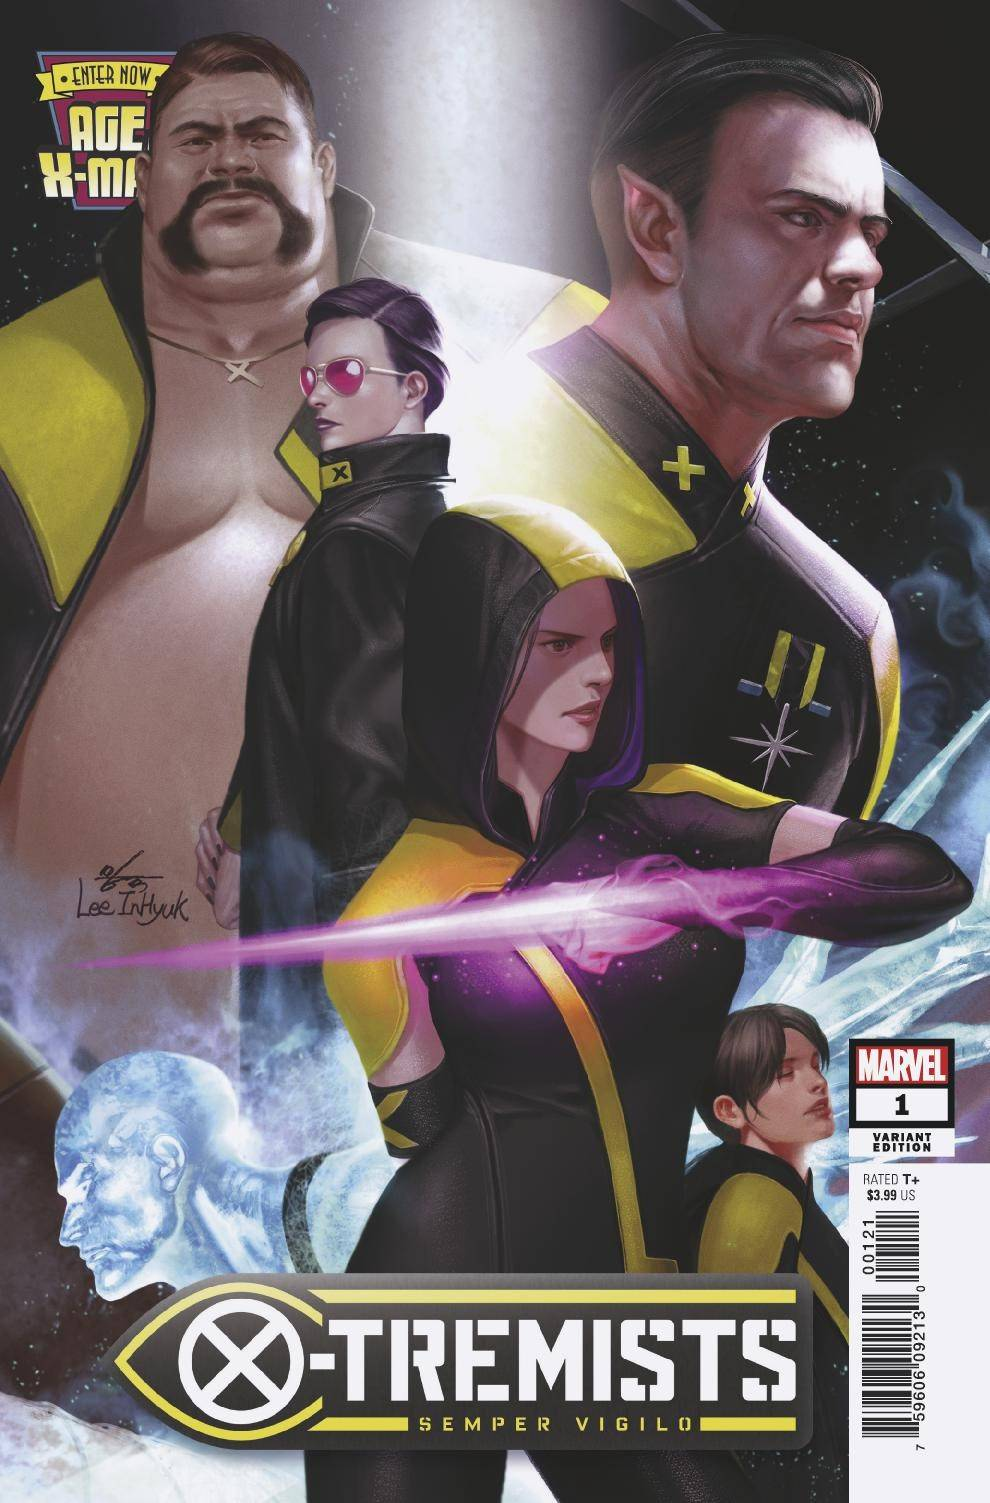 AGE OF X-MAN X-TREMISTS 1 of 5 INHYUK LEE CONNECTING VAR.jpg